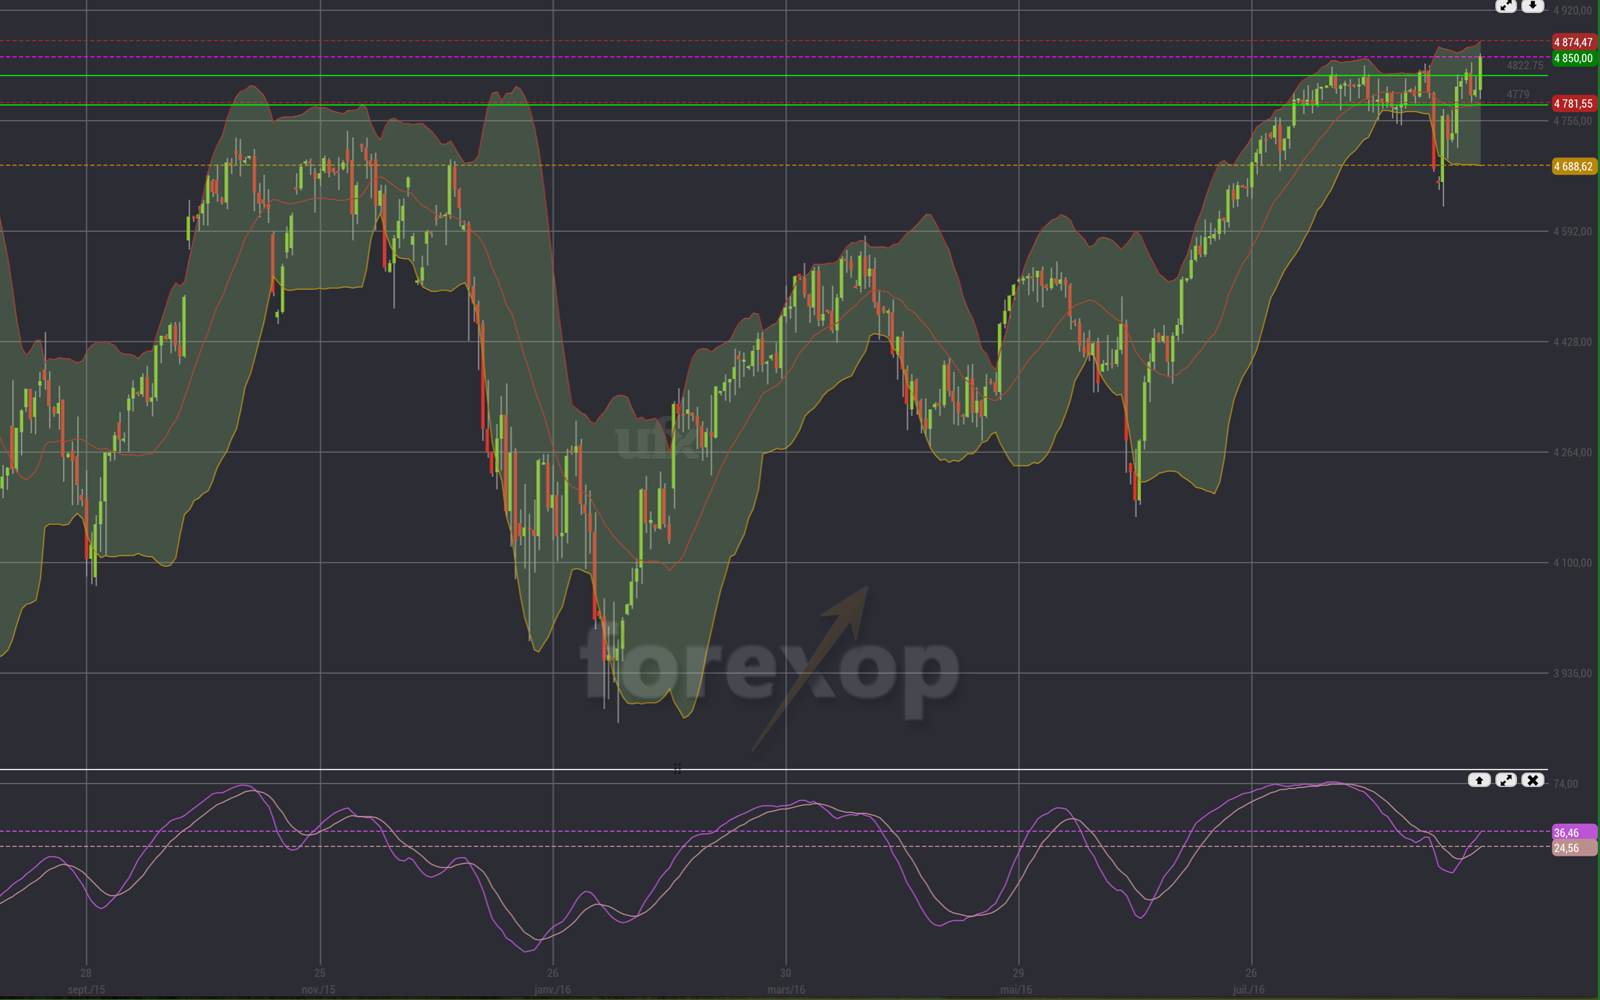 Figure 2: US indices are up: NASDAQ Composite reached a historical high